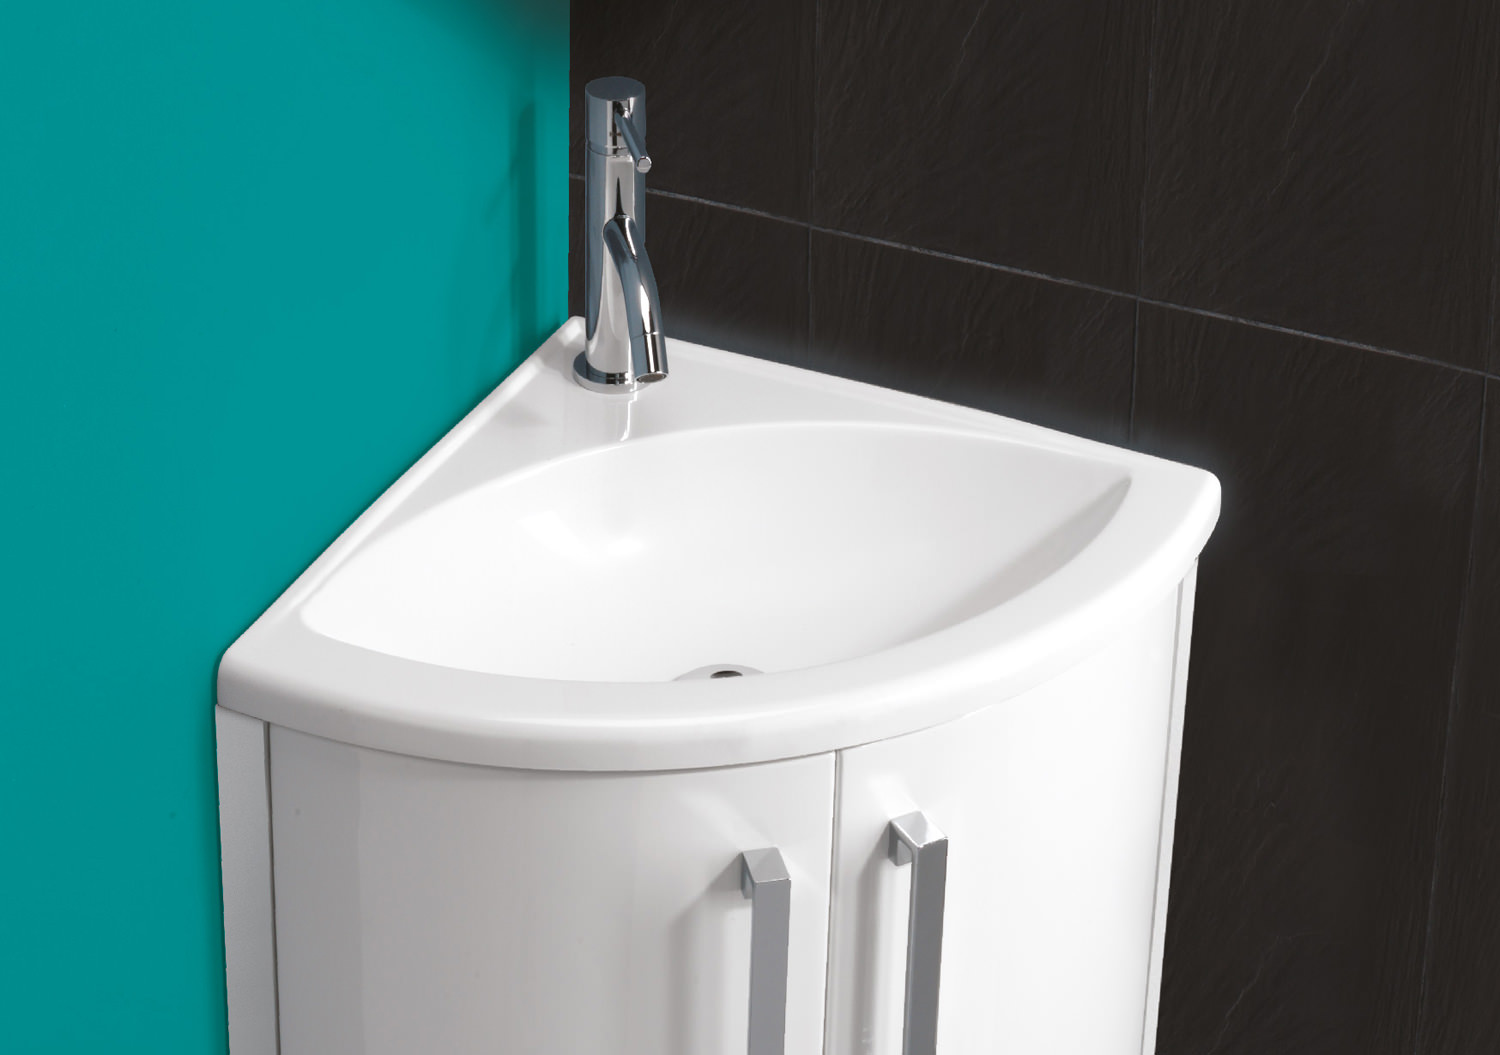 Corner Basin : qs supplies bathrooms basins corner basins hib solo wave corner ...